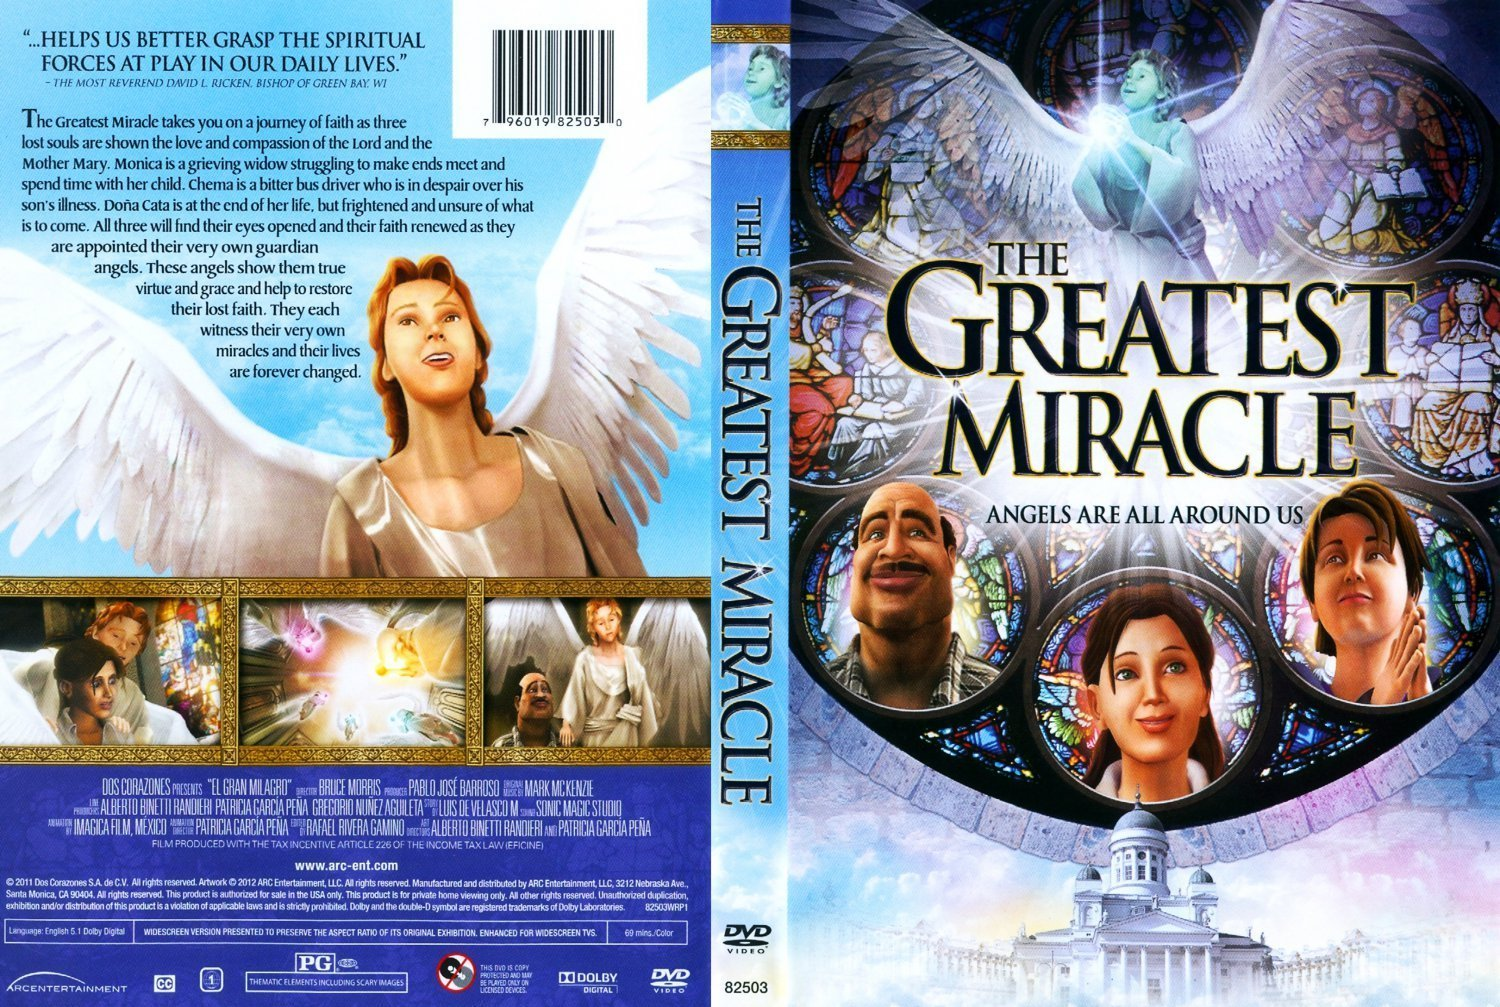 lifes greatest miracle [img] life's greatest miracle studio: pbs/warner brothers year: 2002 rated: nr film length: 60 aspect ratio: full frame.